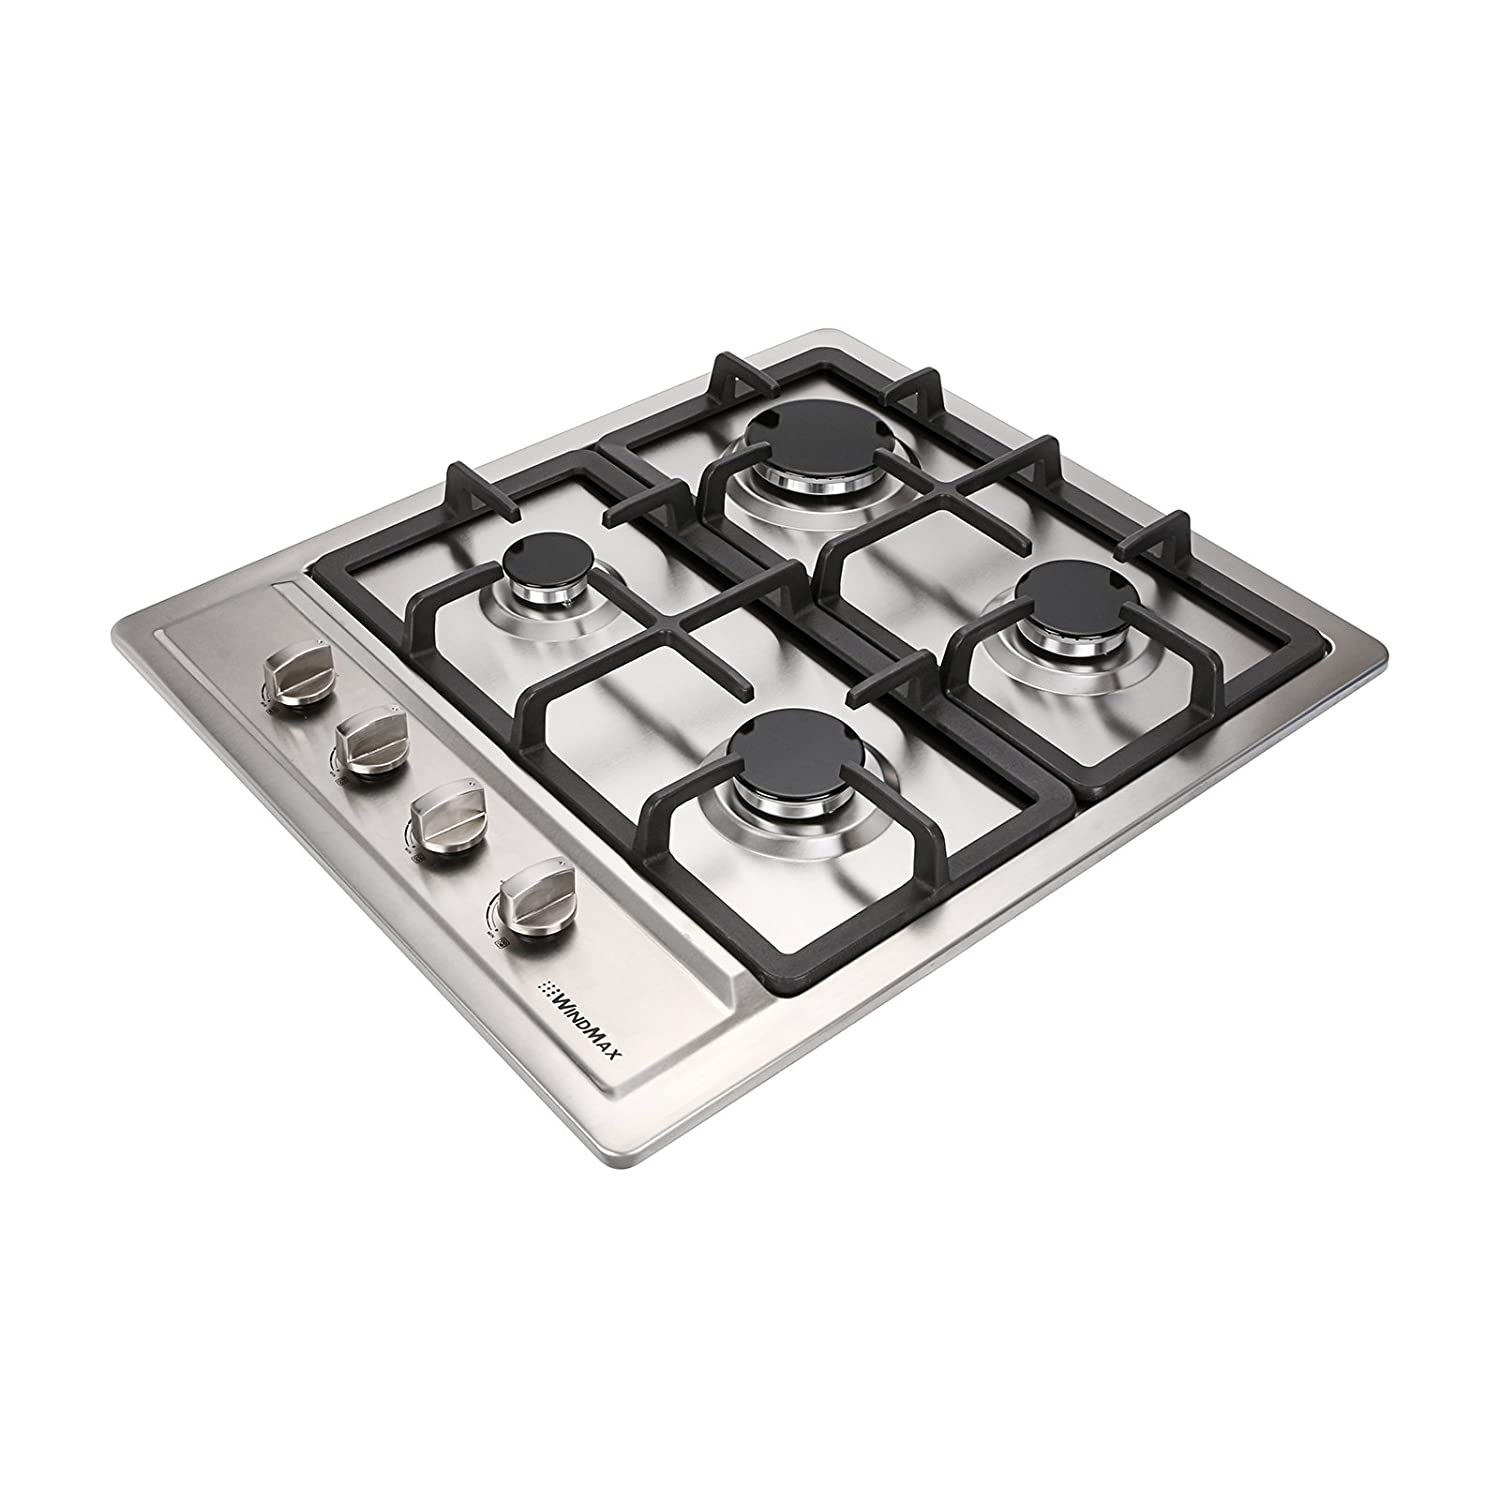 WindMax 60 cm Kitchen Stainless Steel 4 Burners Built-In Stoves NG/LPG Gas Hob Cooktop Cooker (60 cm) Generic